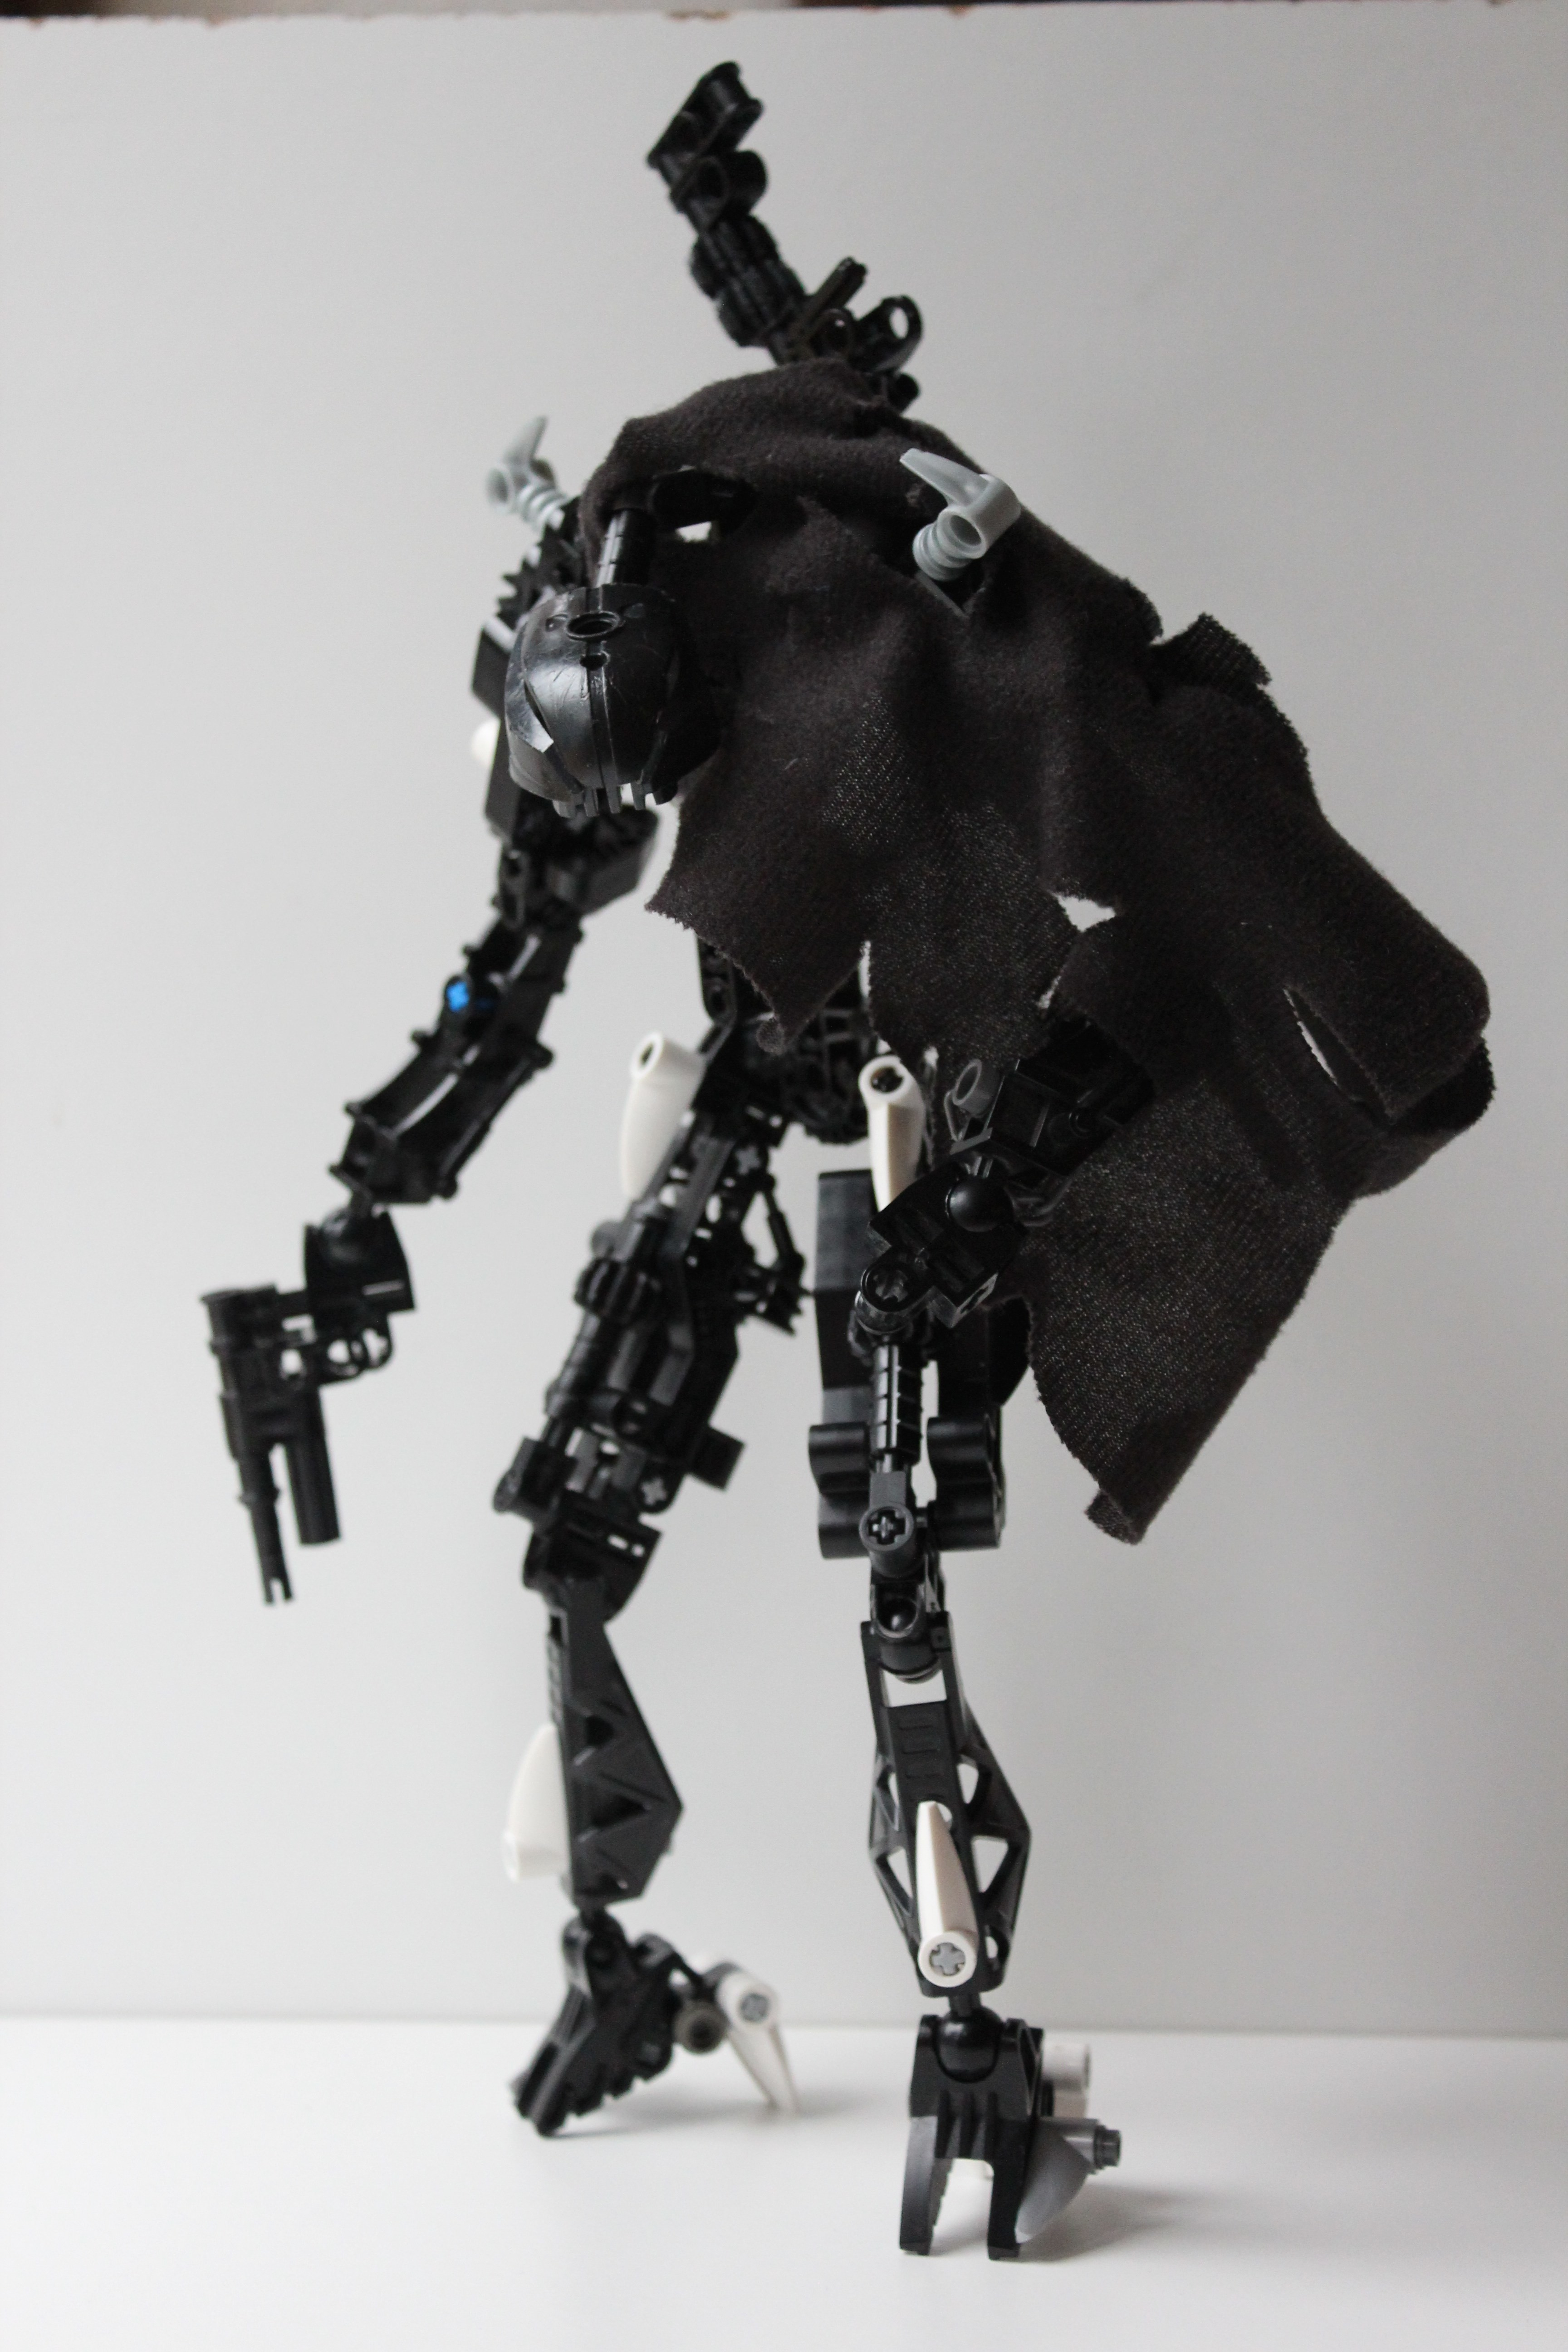 First proper MOC: Dark Umbra (it's meant to be generic) - Lego